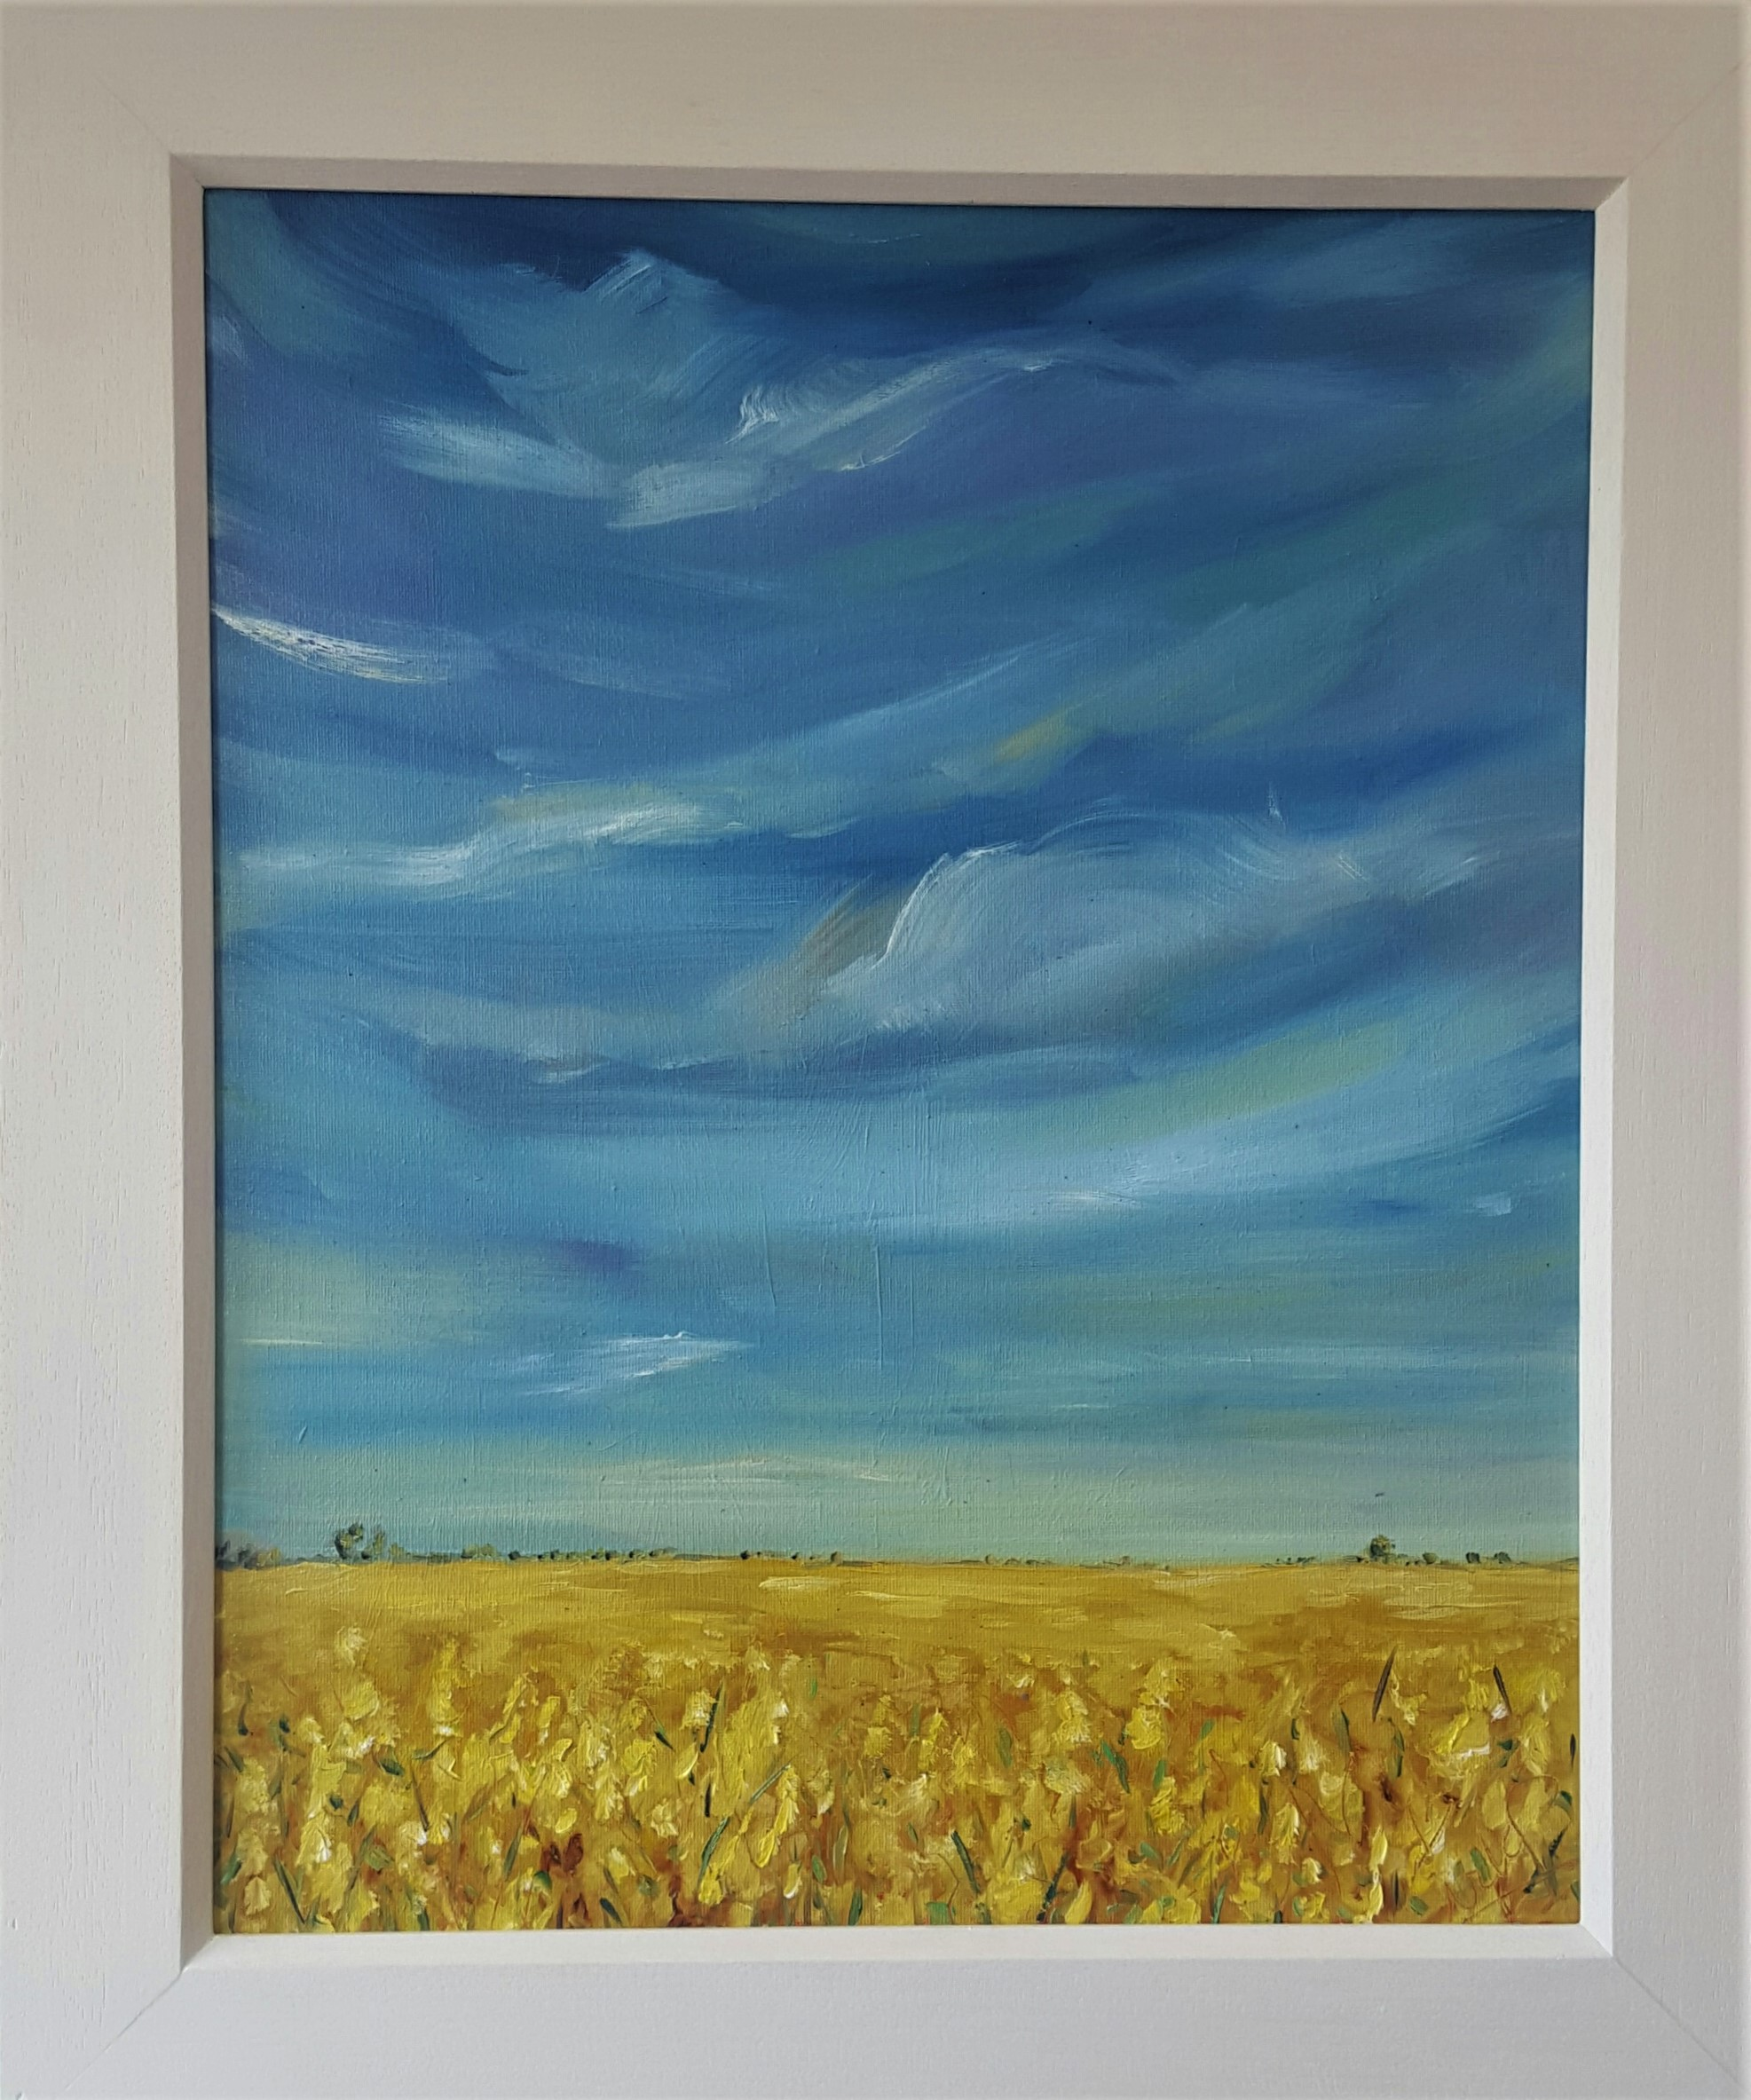 Golden fields and Blue skies - summer delight